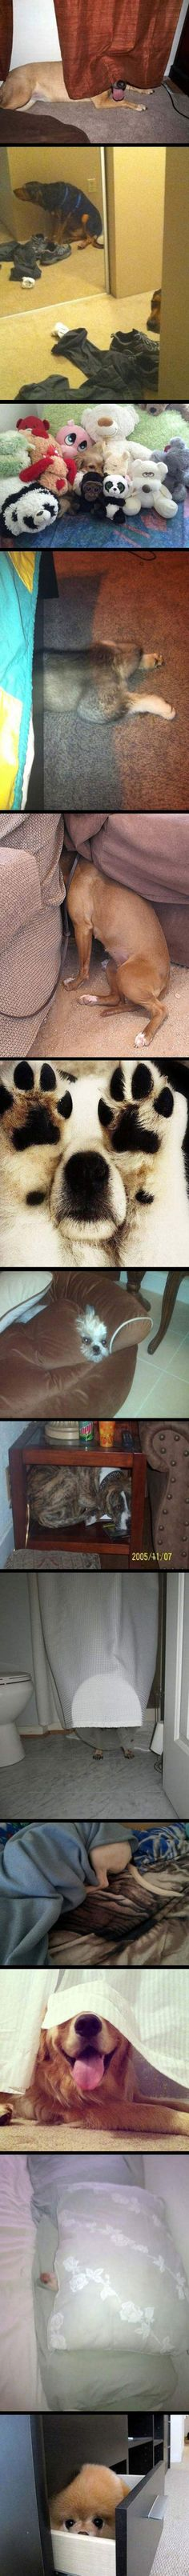 Hide n Seek   // funny pictures - funny photos - funny images - funny pics - funny quotes - #lol #humor #funnypictures